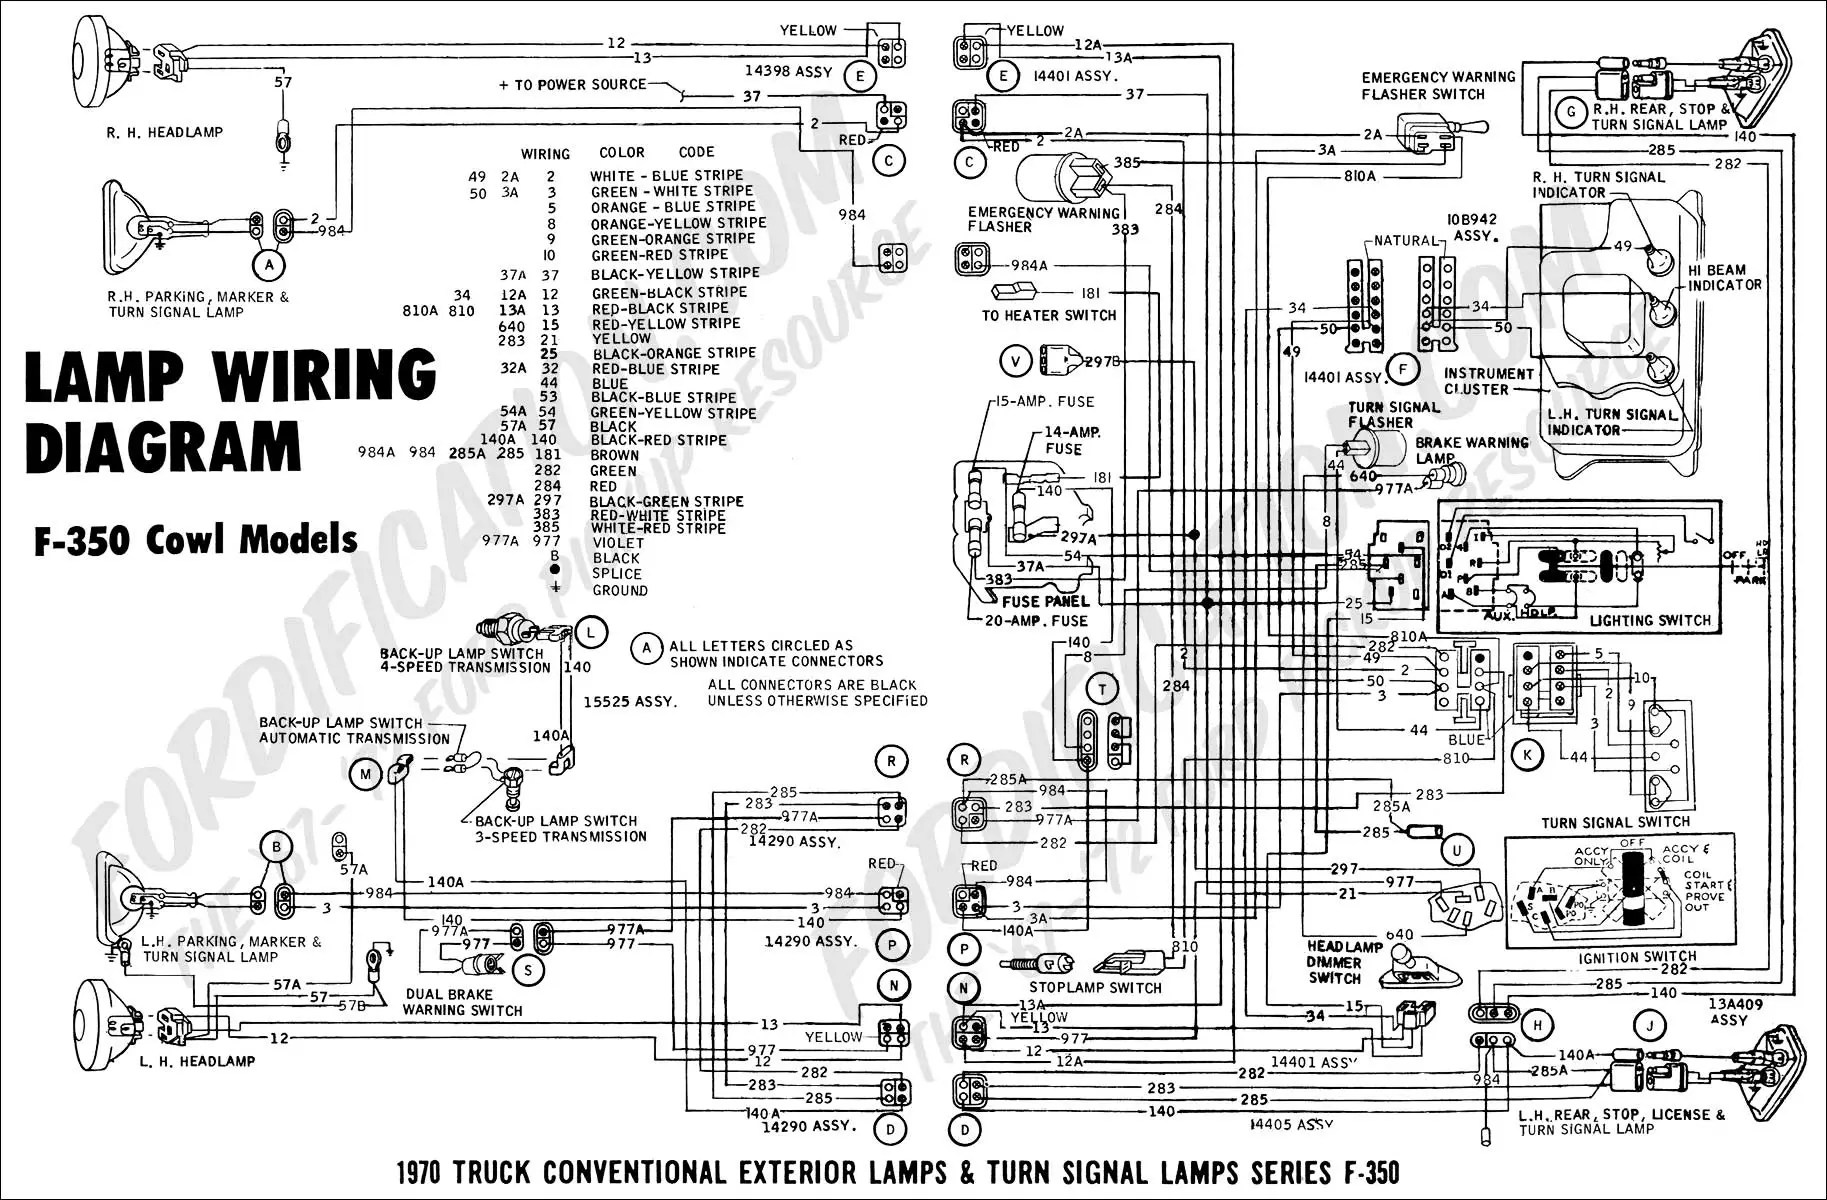 small resolution of wiring diagram 70f350cowl lights01 resize 665 2c437 wiring diagram for 1970 73 nova